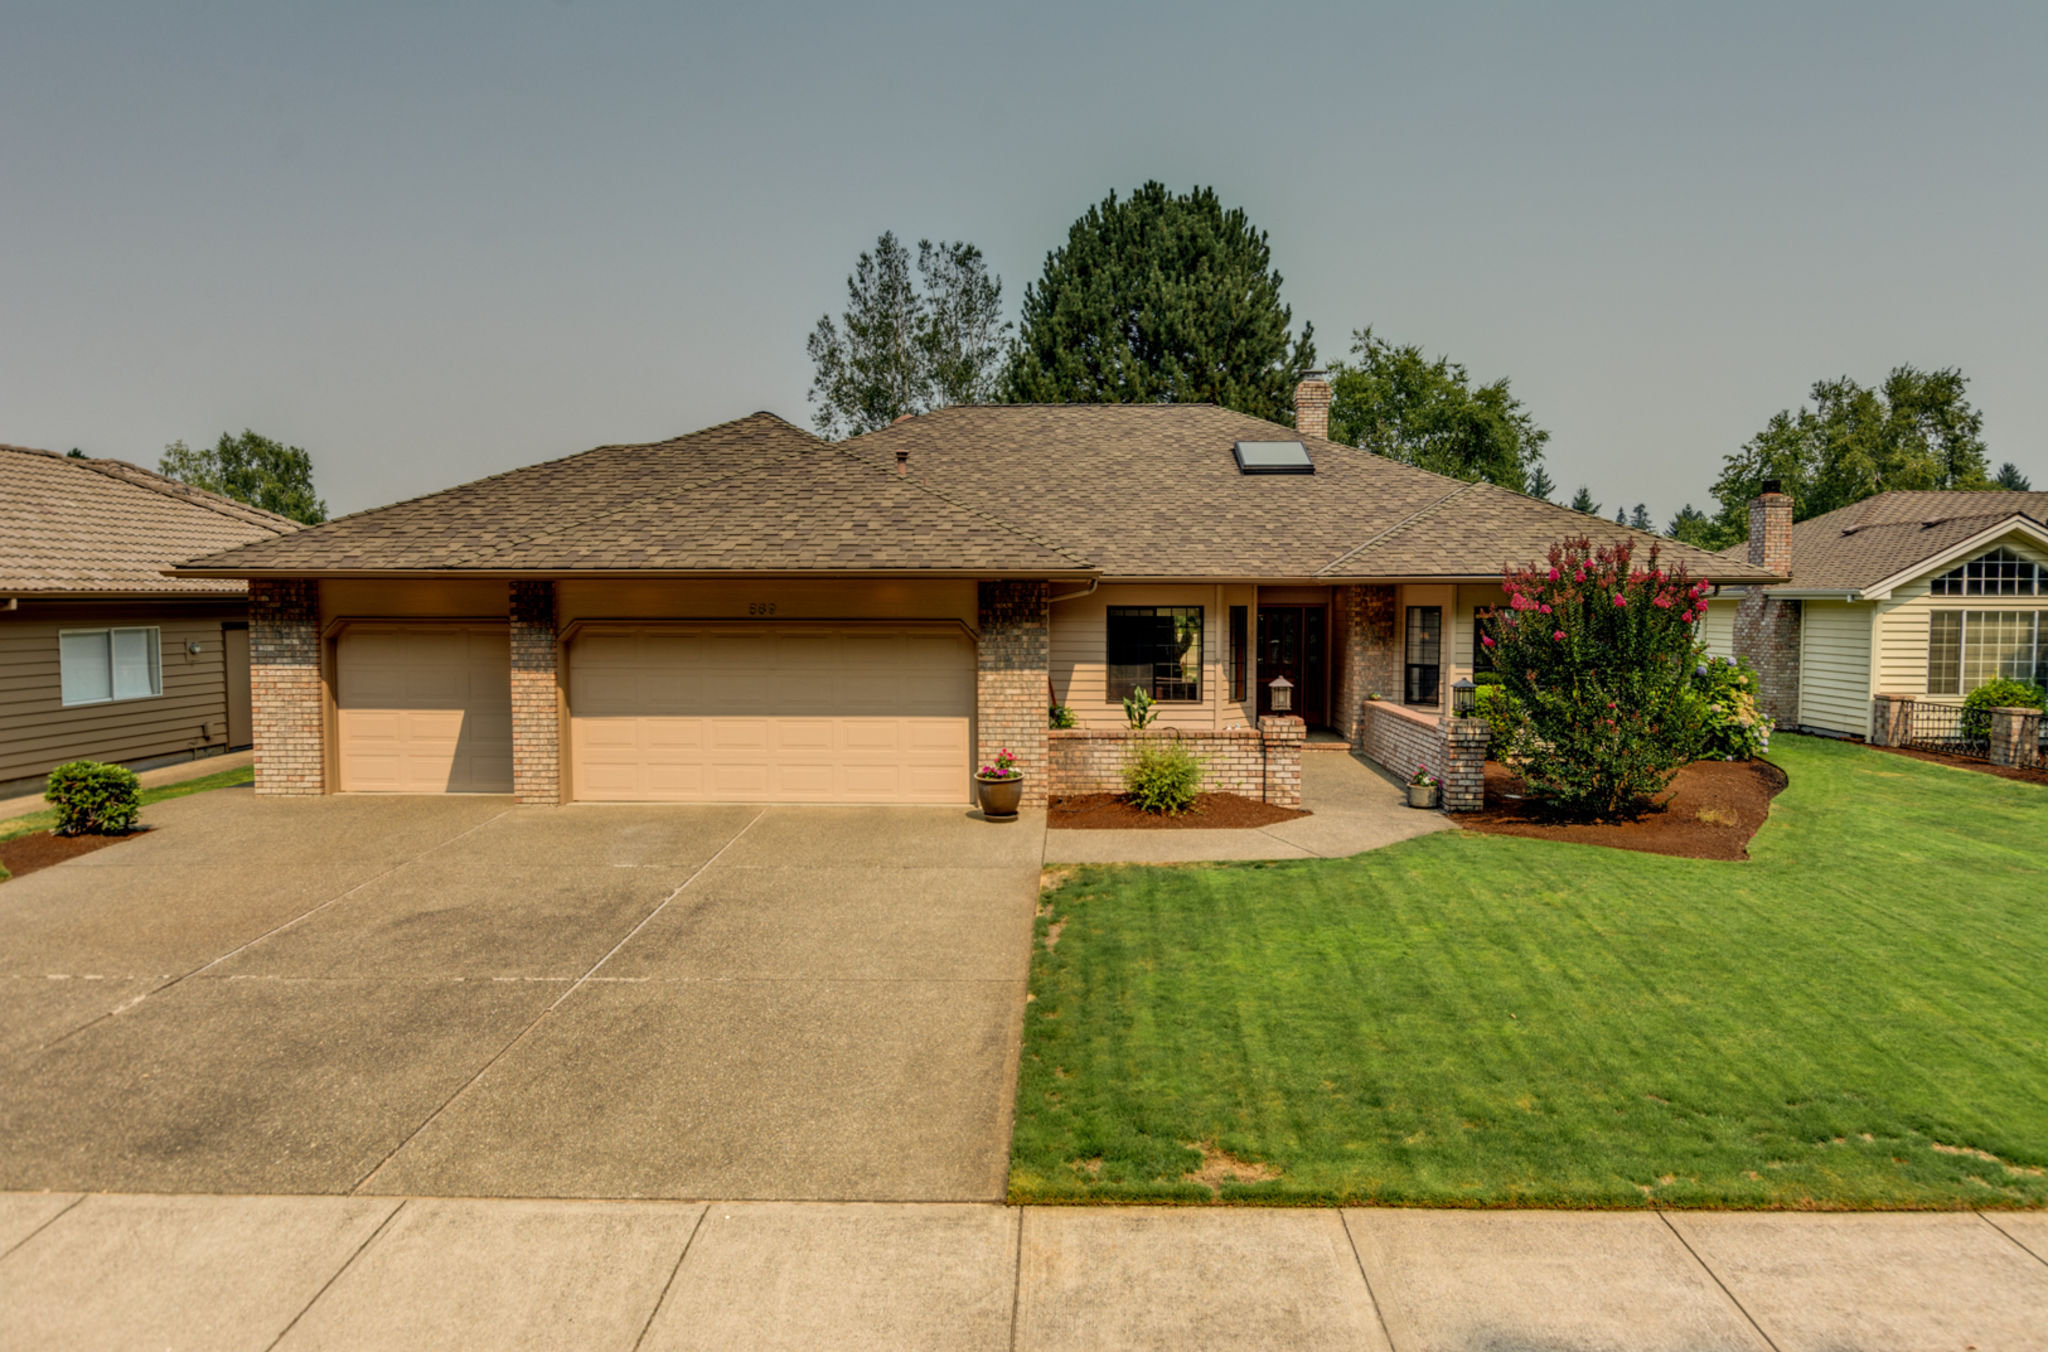 569_mcnary_estates_dr_n_1_ipad_pro